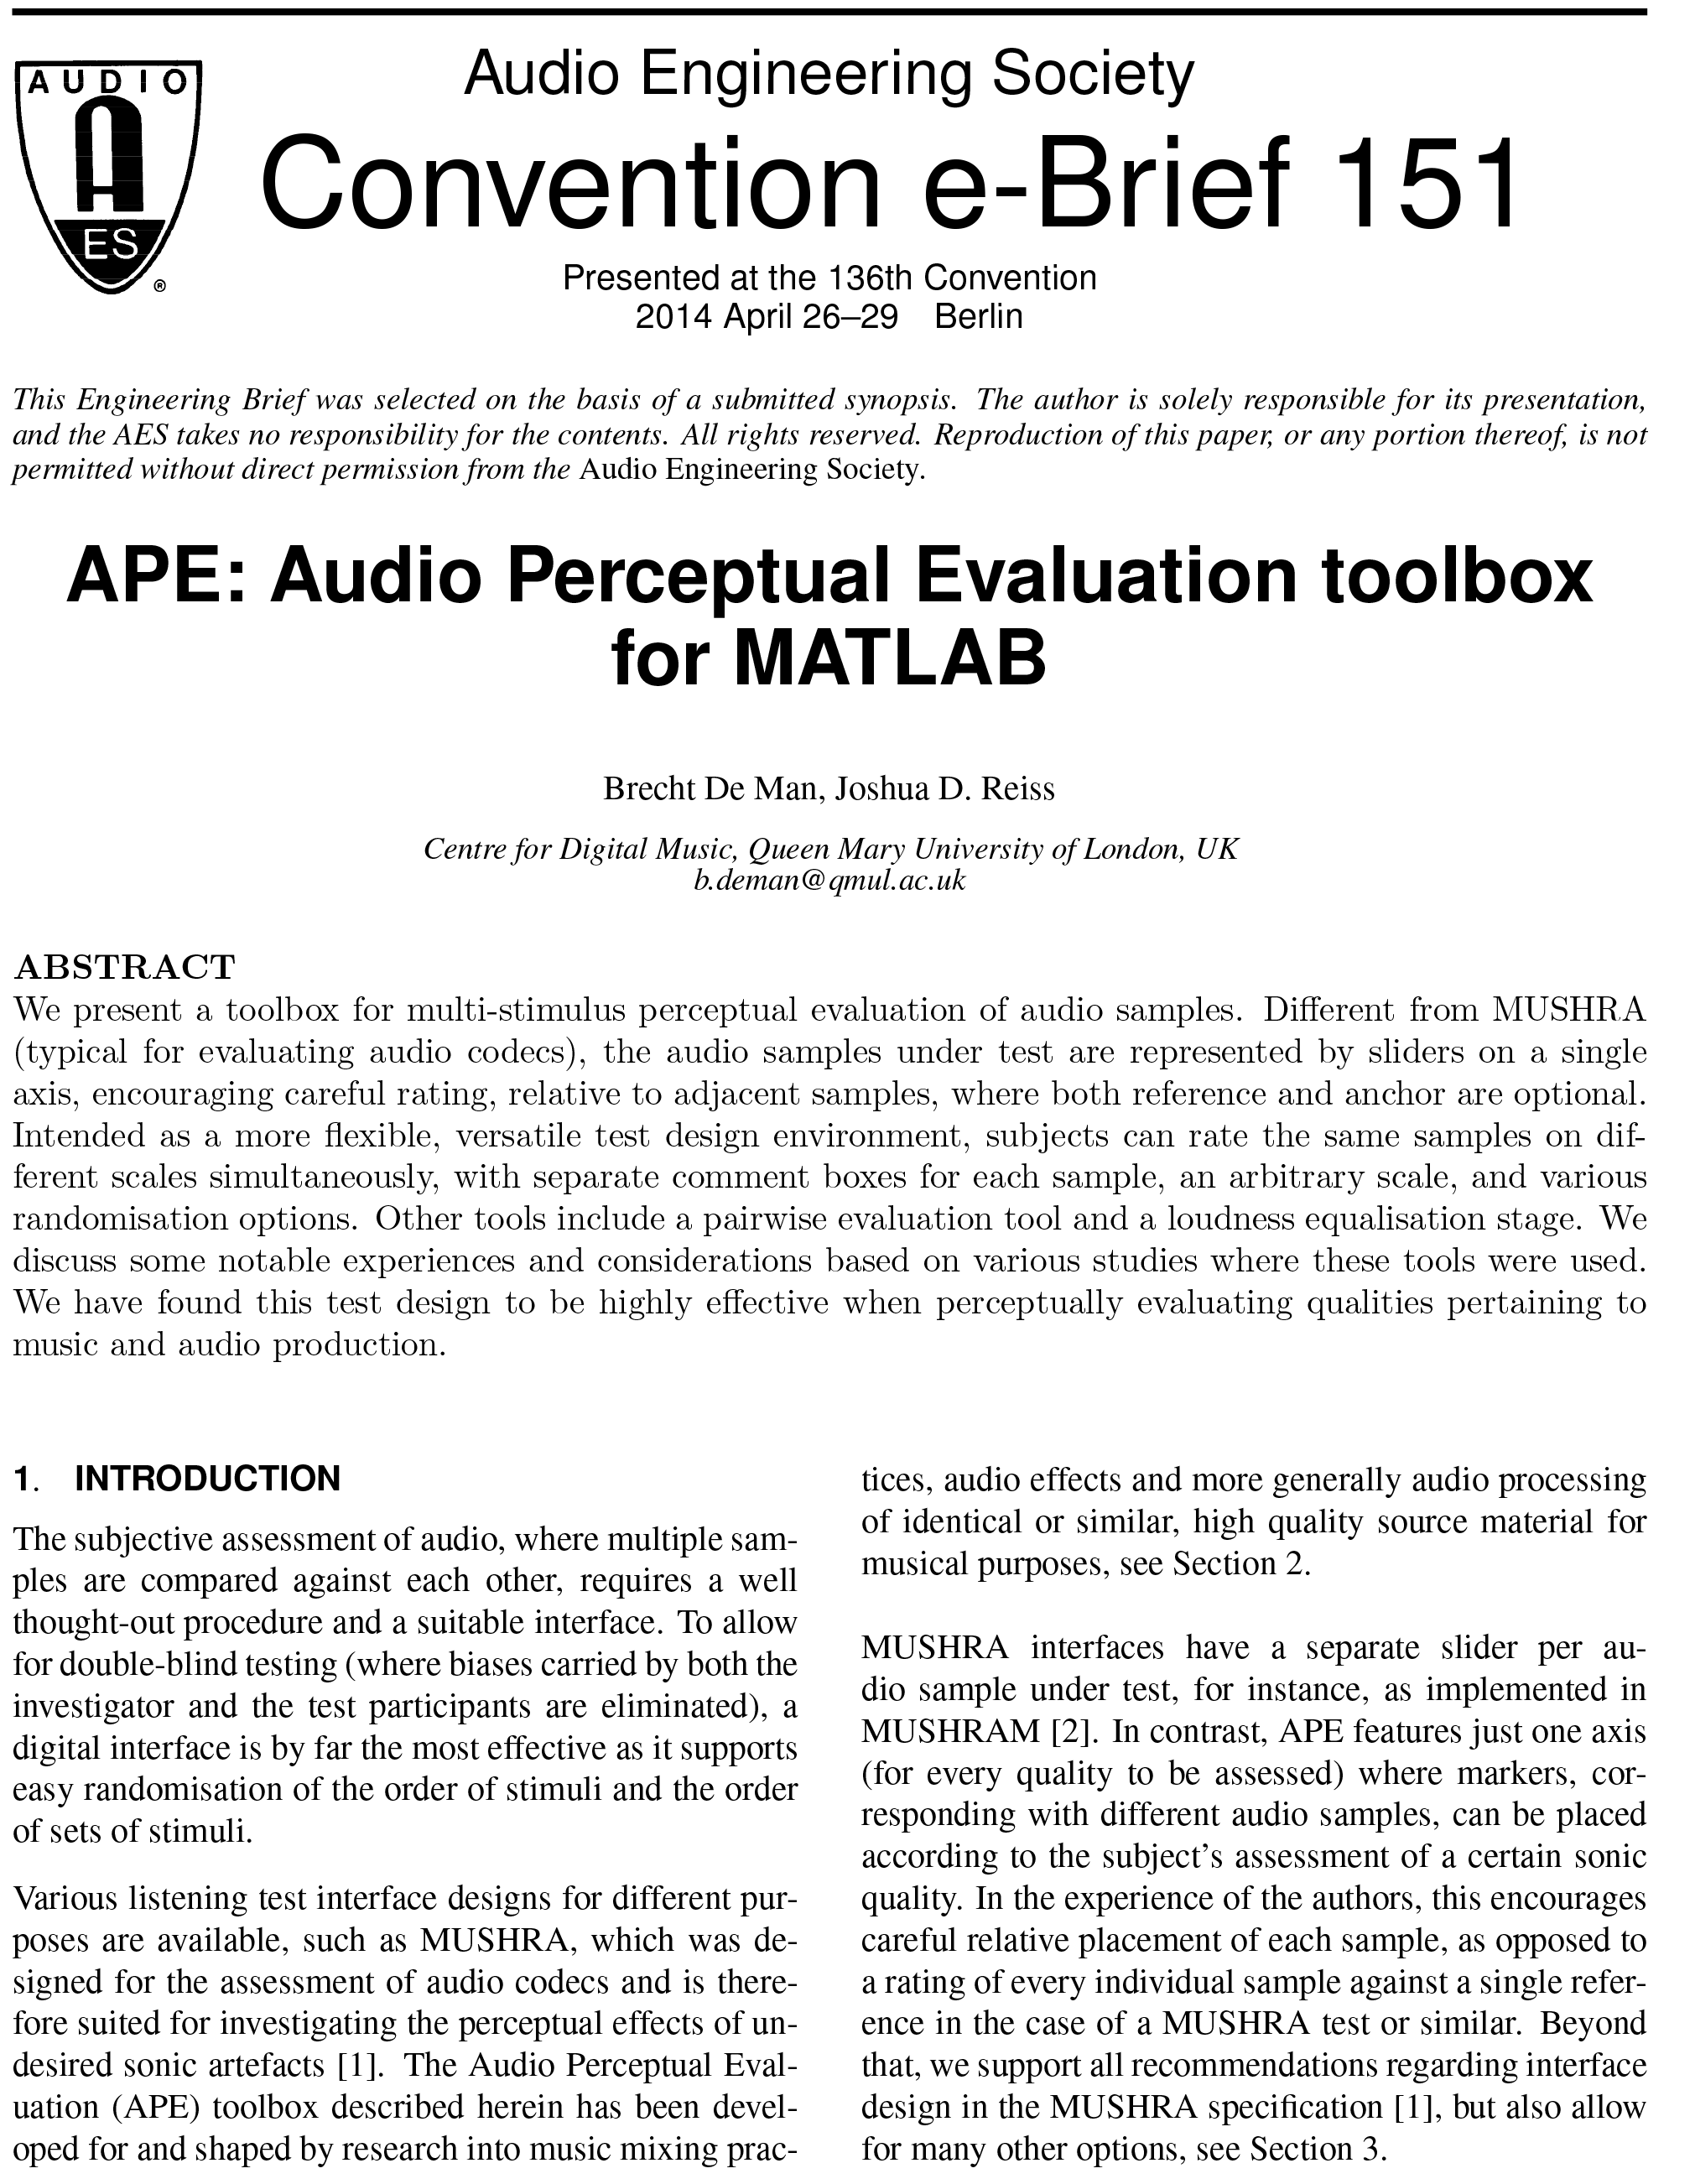 AES E-Library » APE: Audio Perceptual Evaluation Toolbox for MATLAB